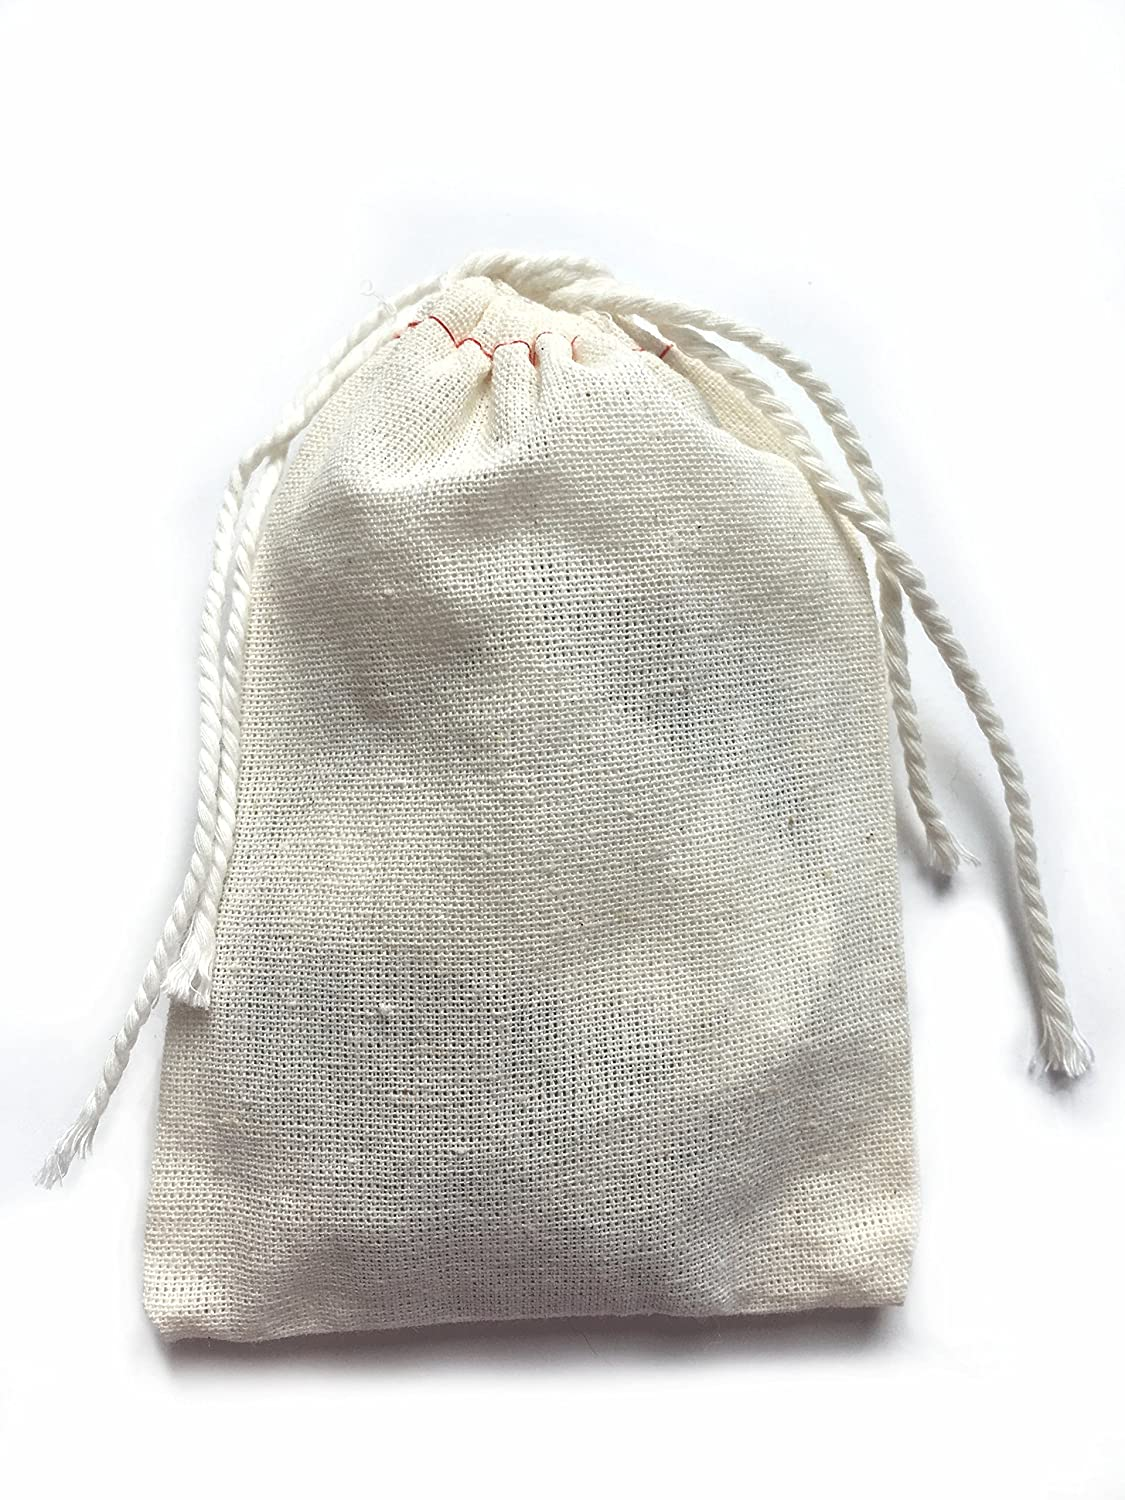 6906b7d30d Amazon.com  Small Cotton Muslin Cloth Double Drawstring Bag 3x5 inch 25  count  Kitchen   Dining